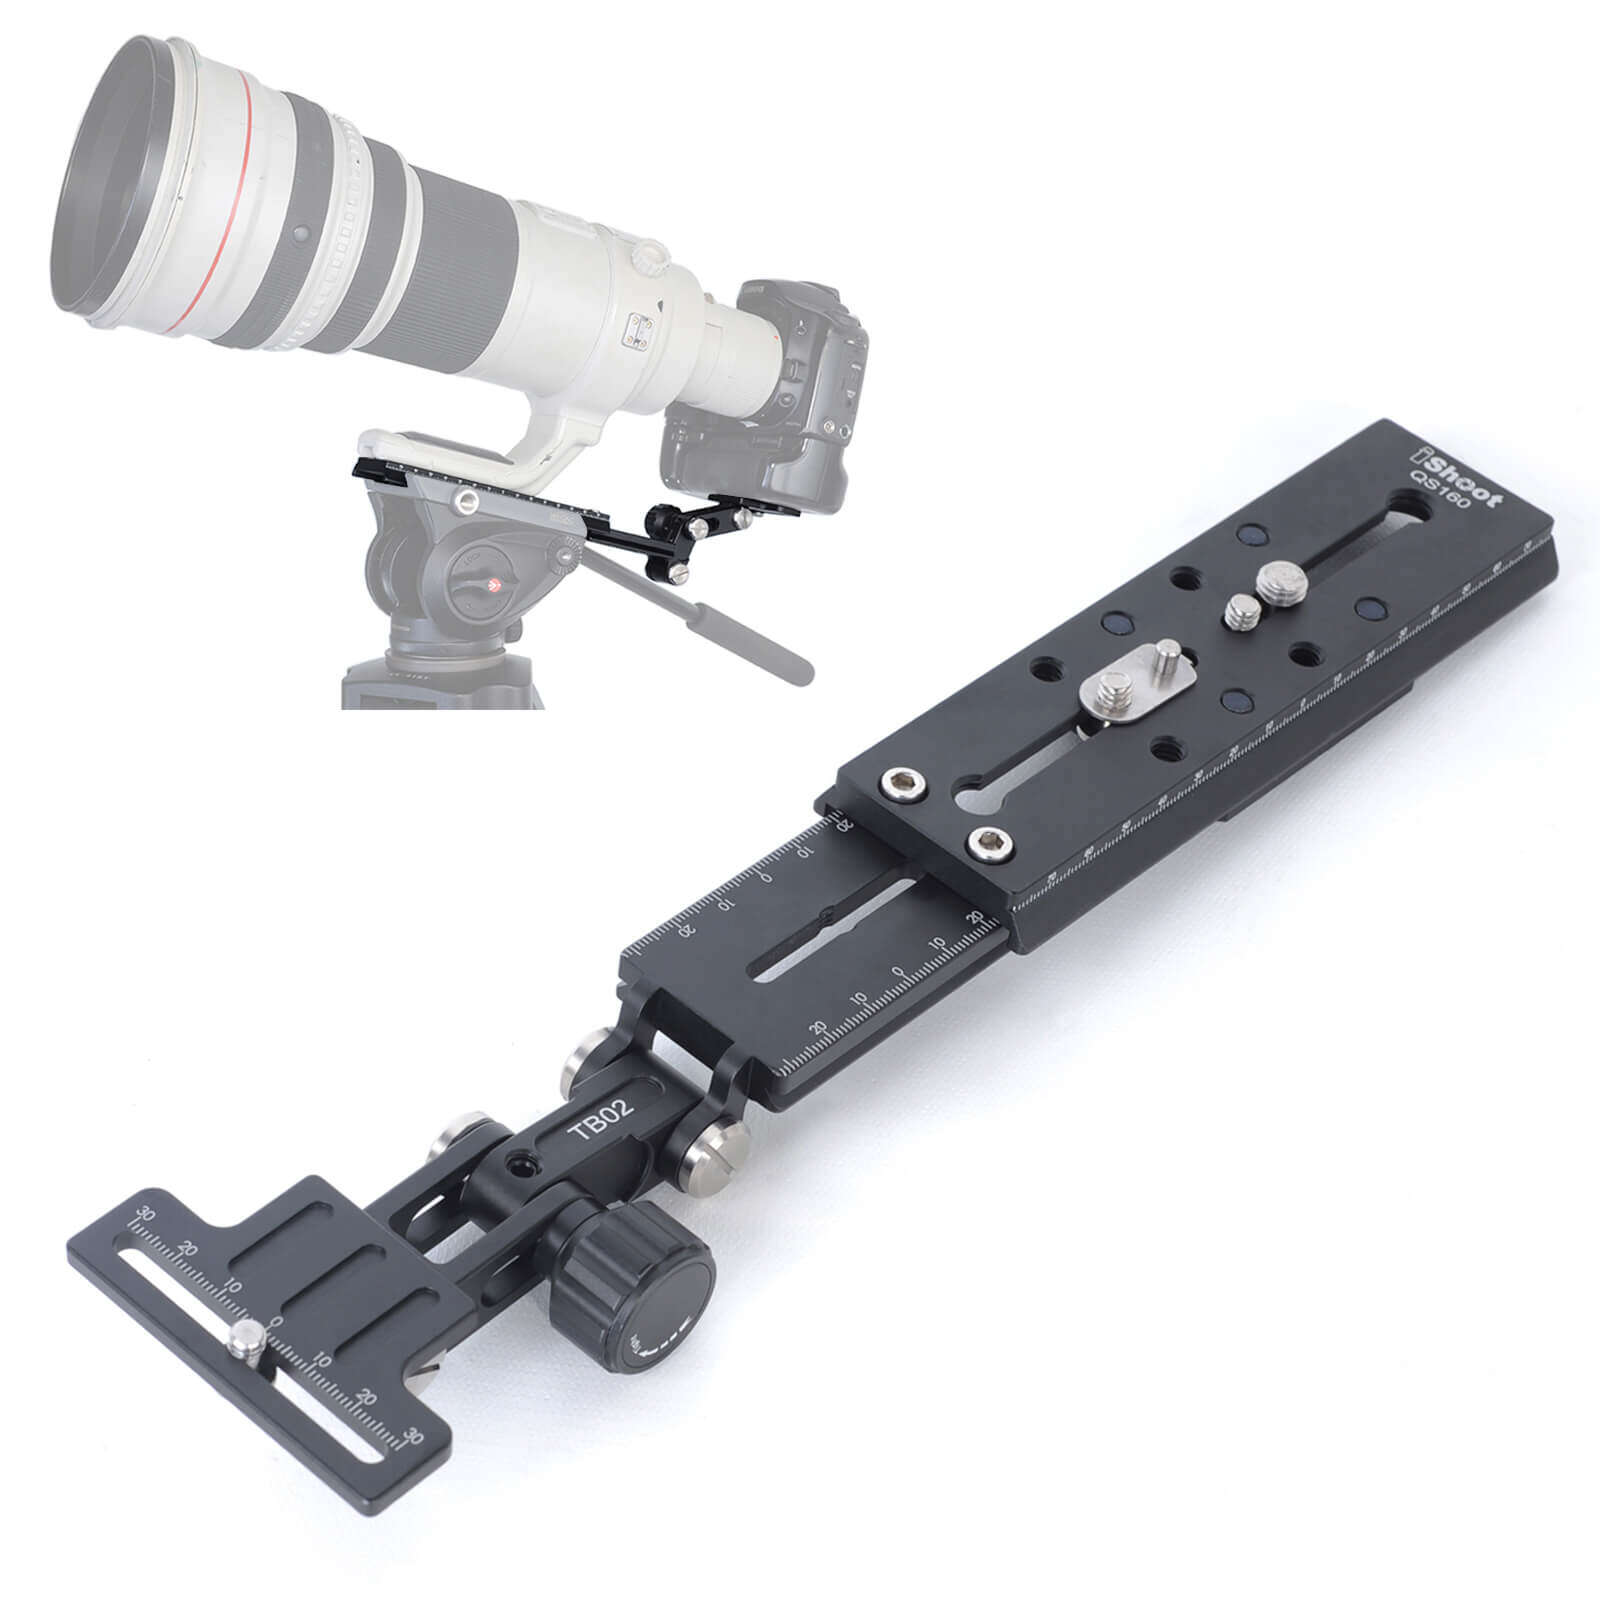 Long Lens Support and Quick Release Plate for Fluid Head Manfrotto Sachtler FSB